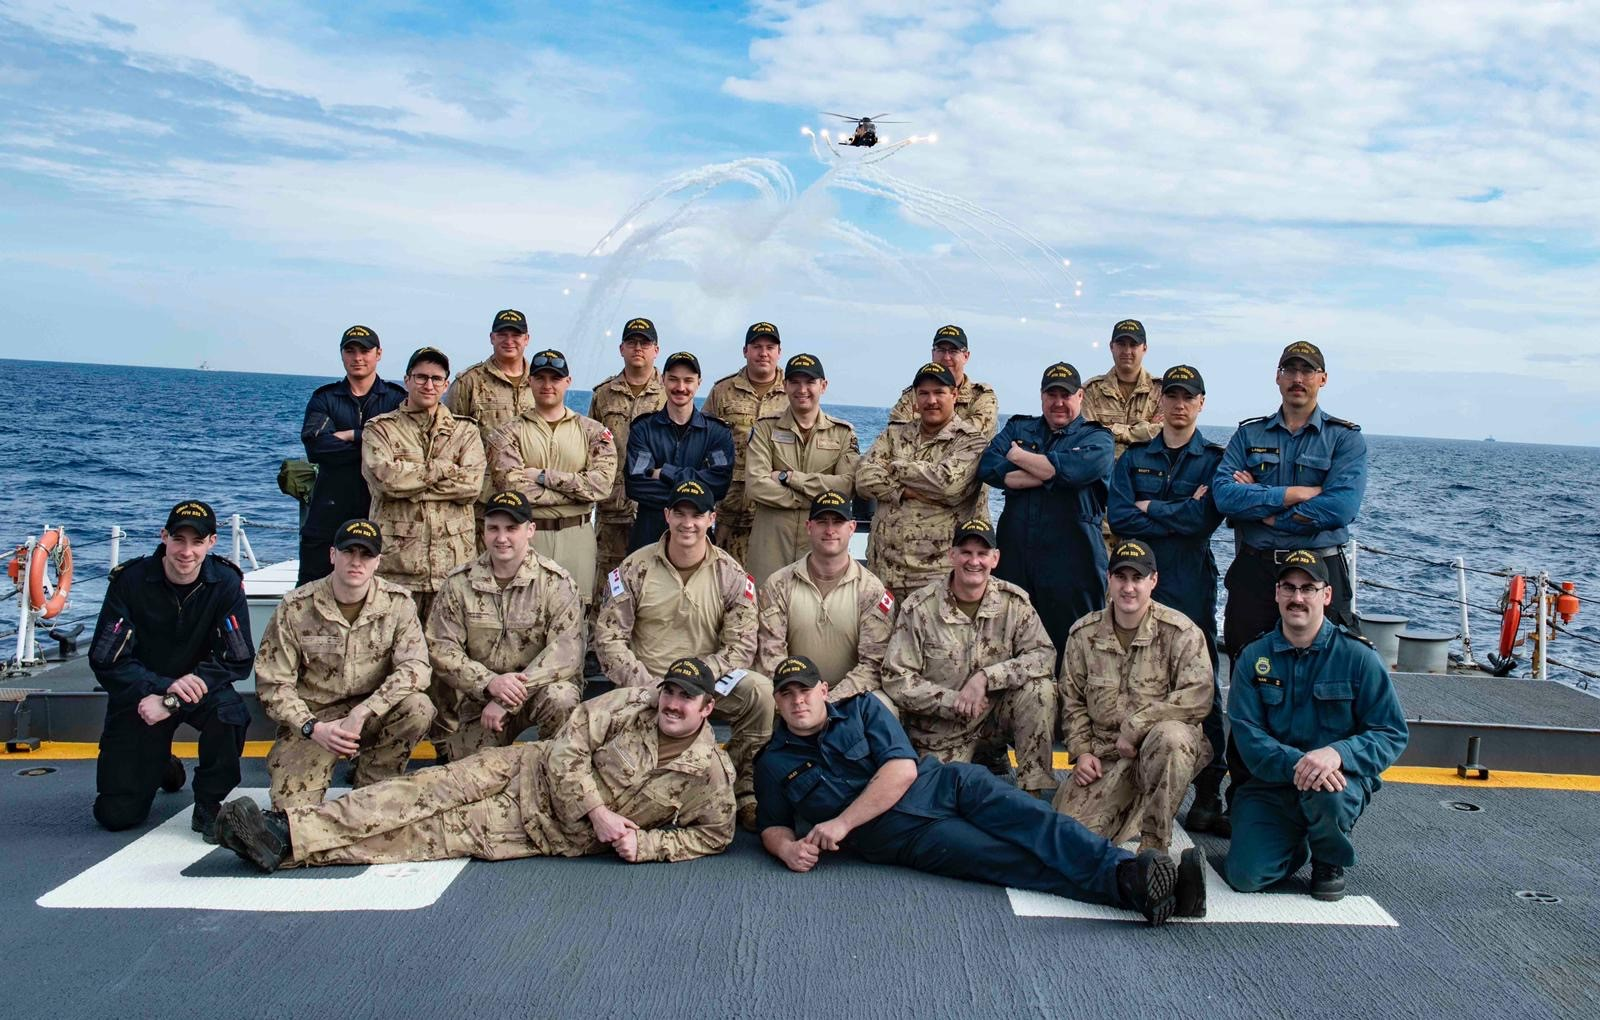 Maj Matthew Dukowski (fourth from left, front row kneeling), Helicopter Air Detachment Commander, pictured with members of the air detachment on HMCS Toronto, with a CH-148 Cyclone flying above, during a six-month deployment on Operation Reassurance in 2019. PHOTO: Submitted